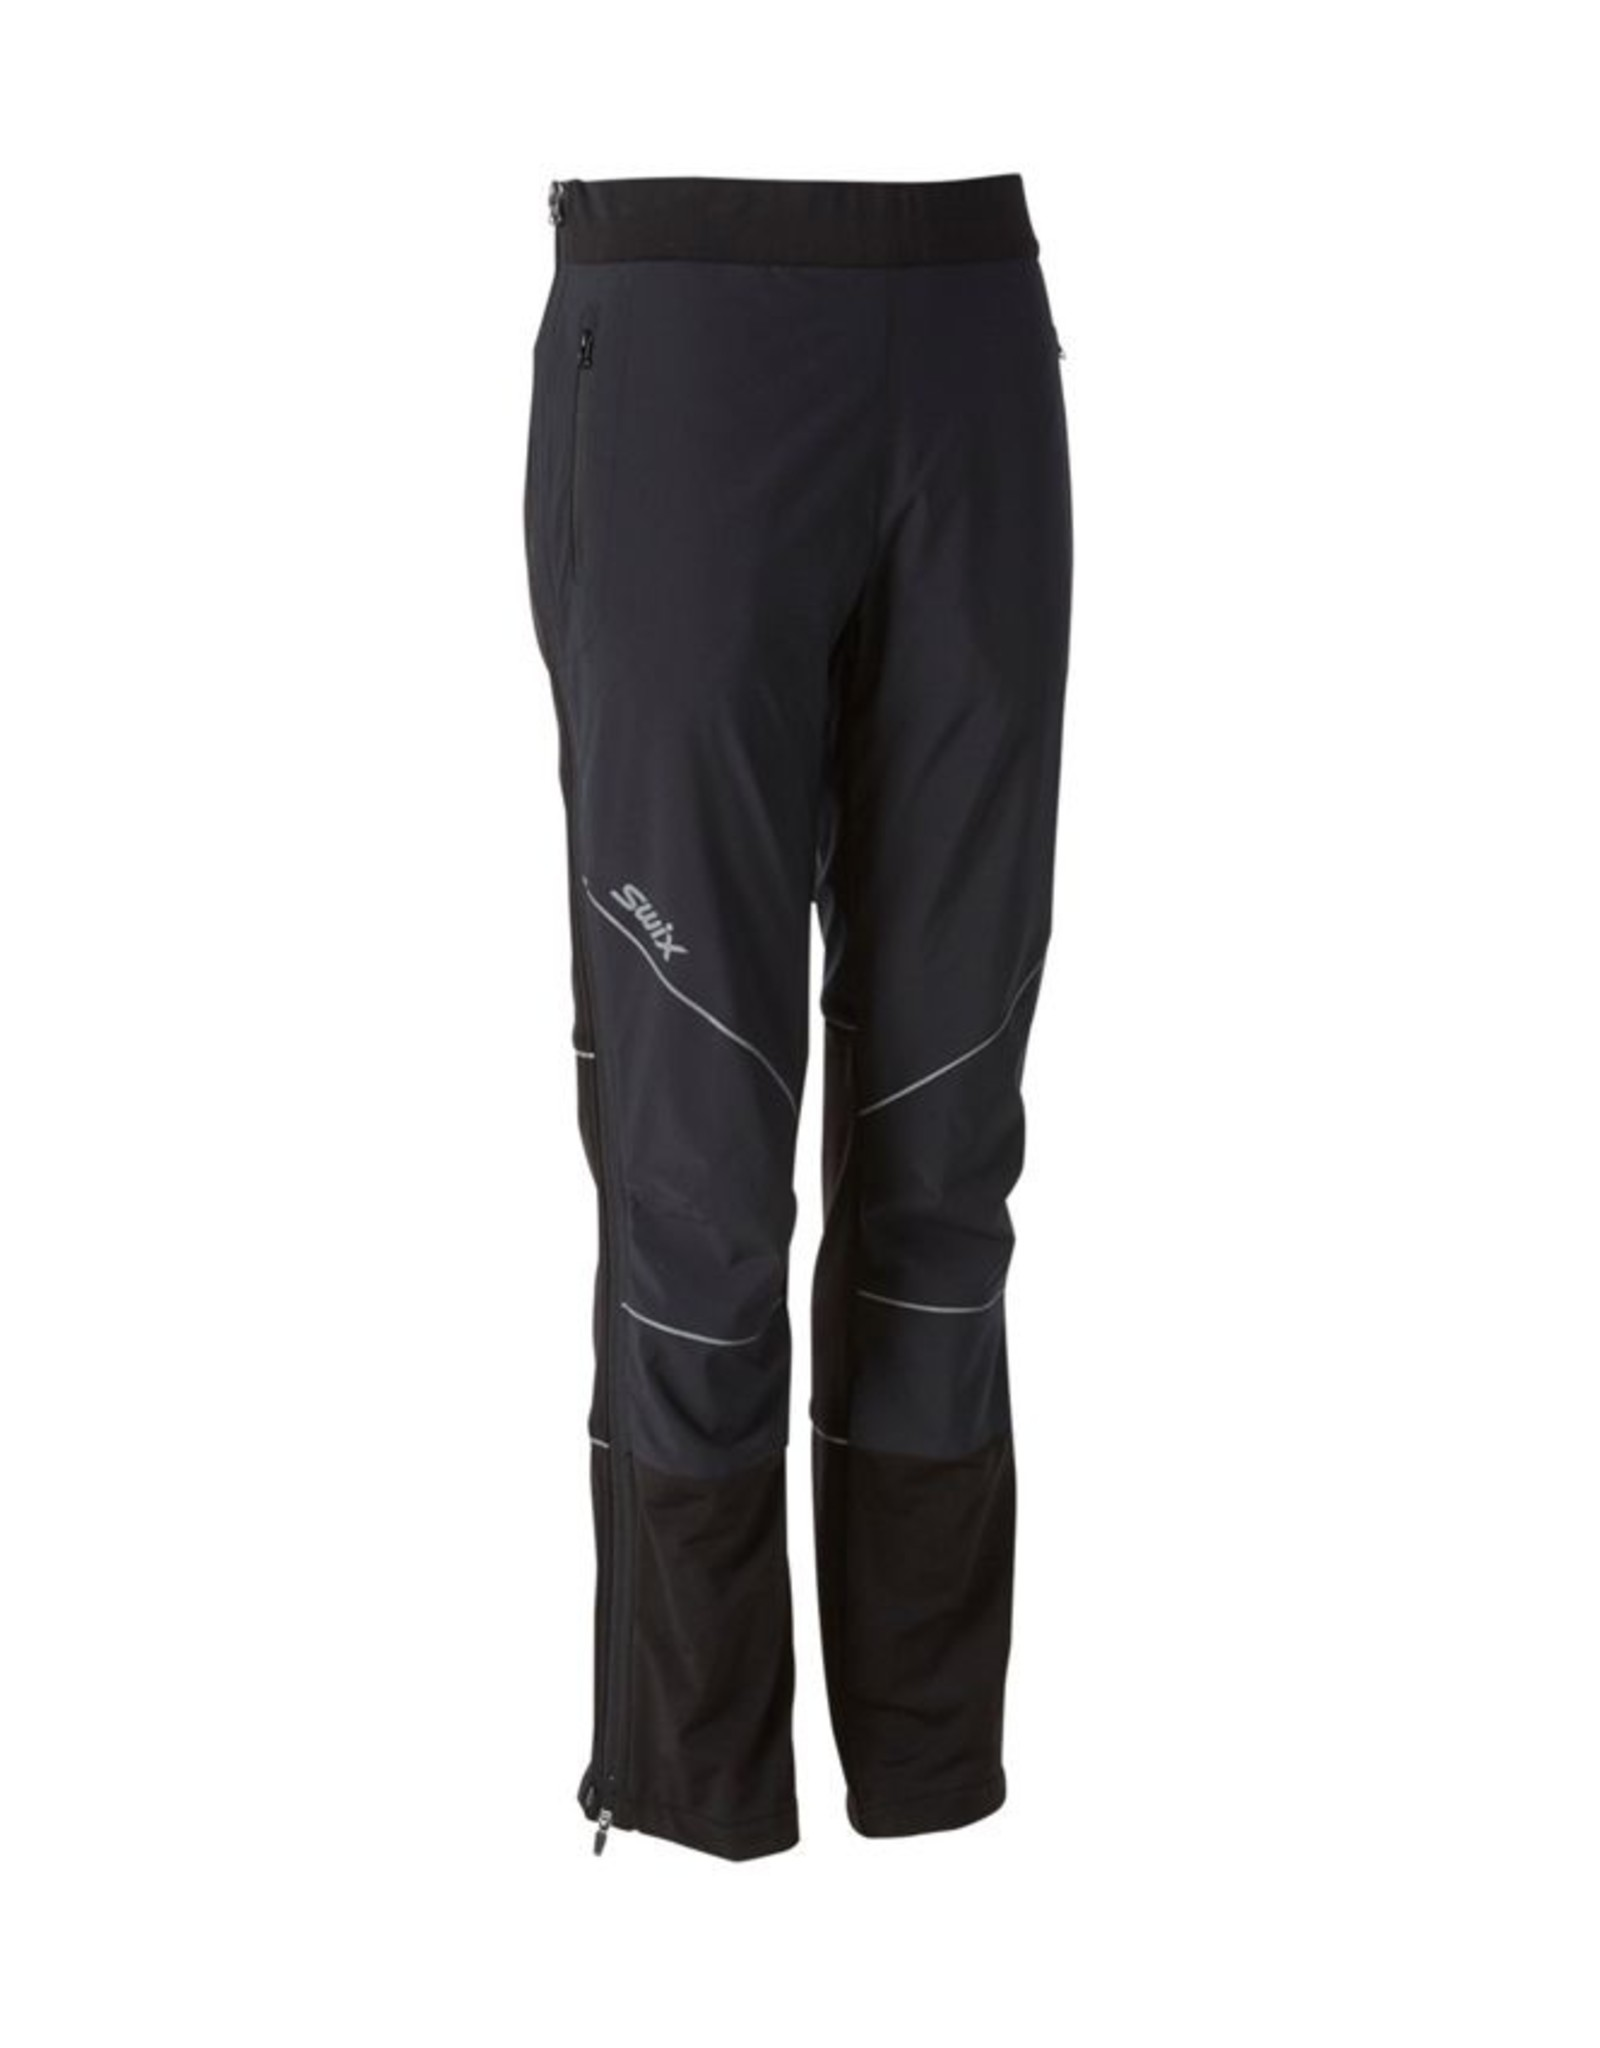 Swix UniversalX Pants Mens M (10000) Black